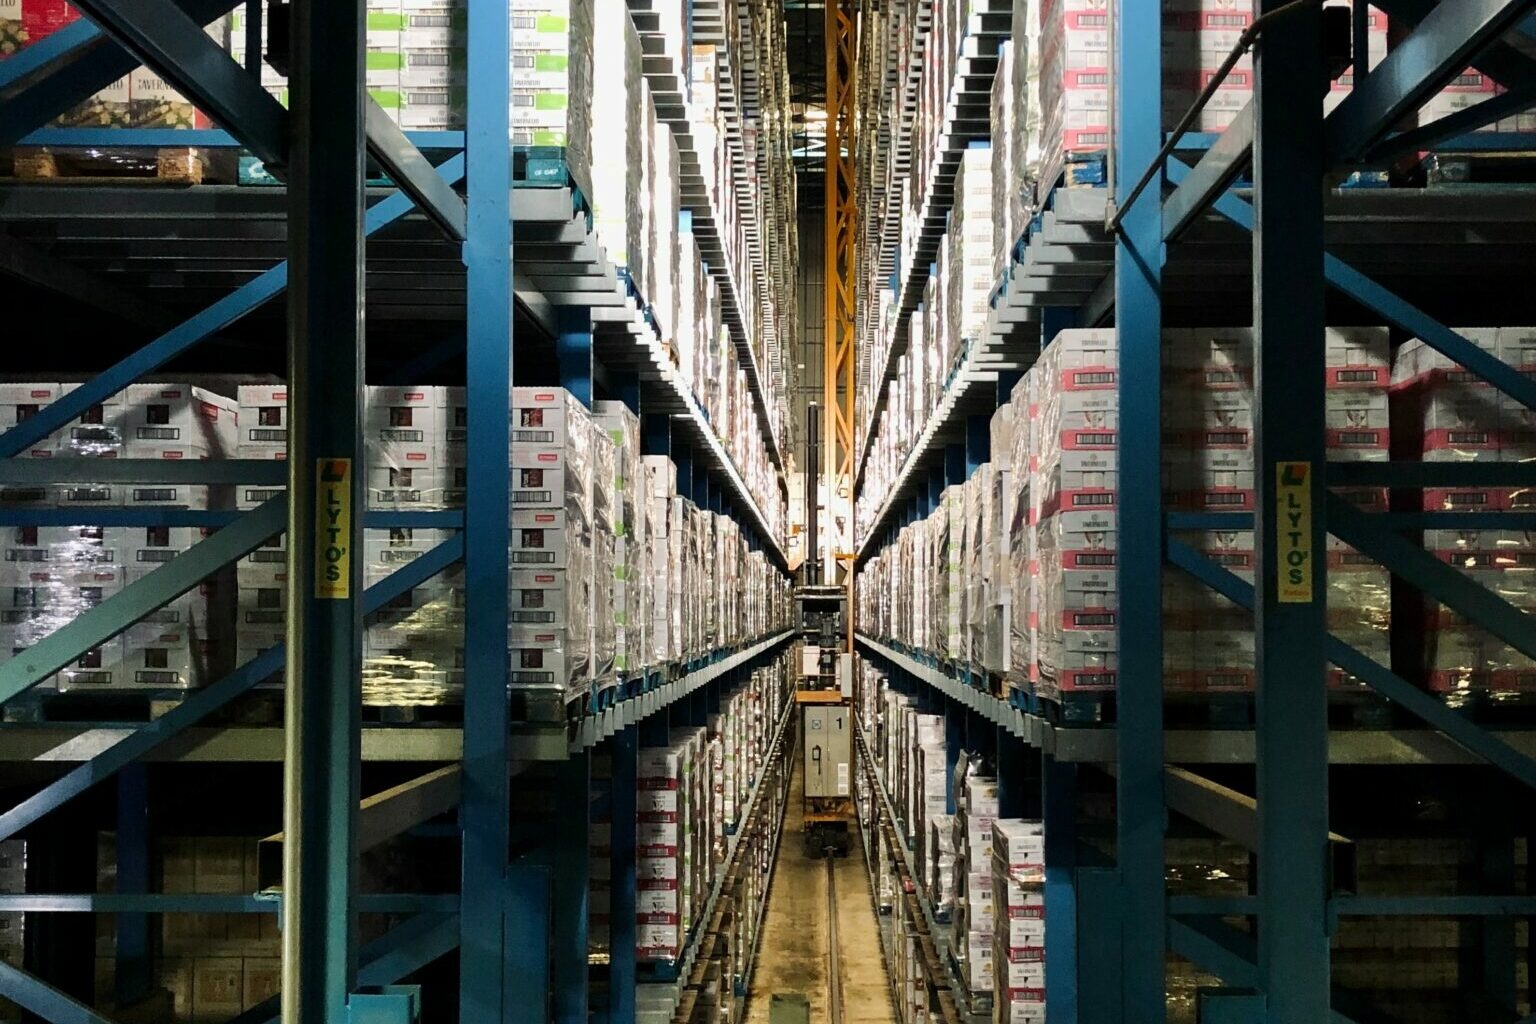 Shifting through the gears with supply chain planning software